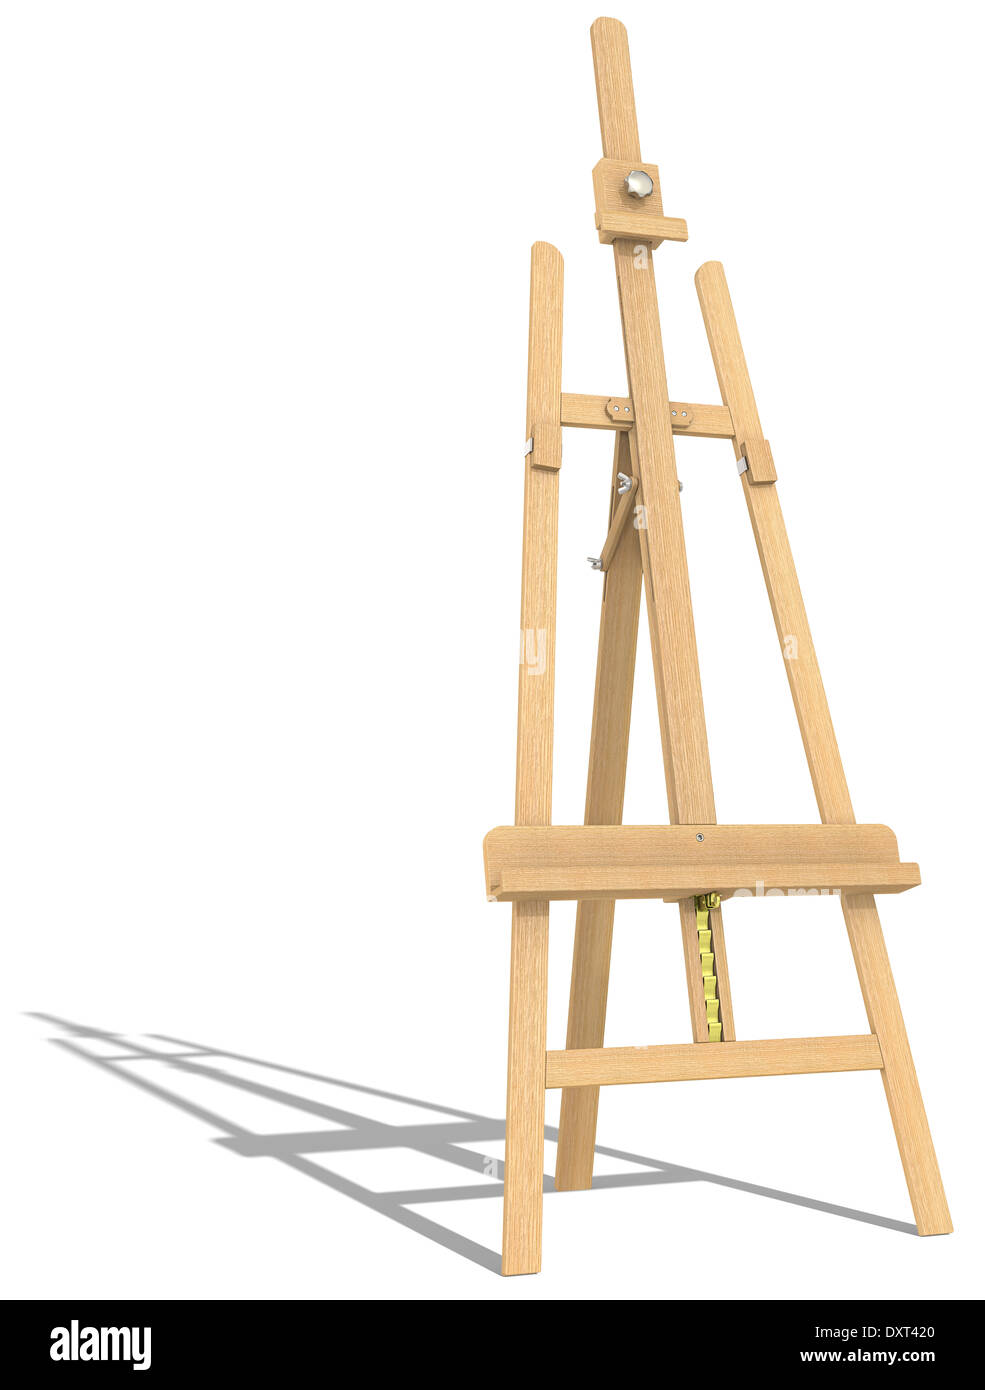 side view of an easel hard shadow stock photo 68142200 alamy